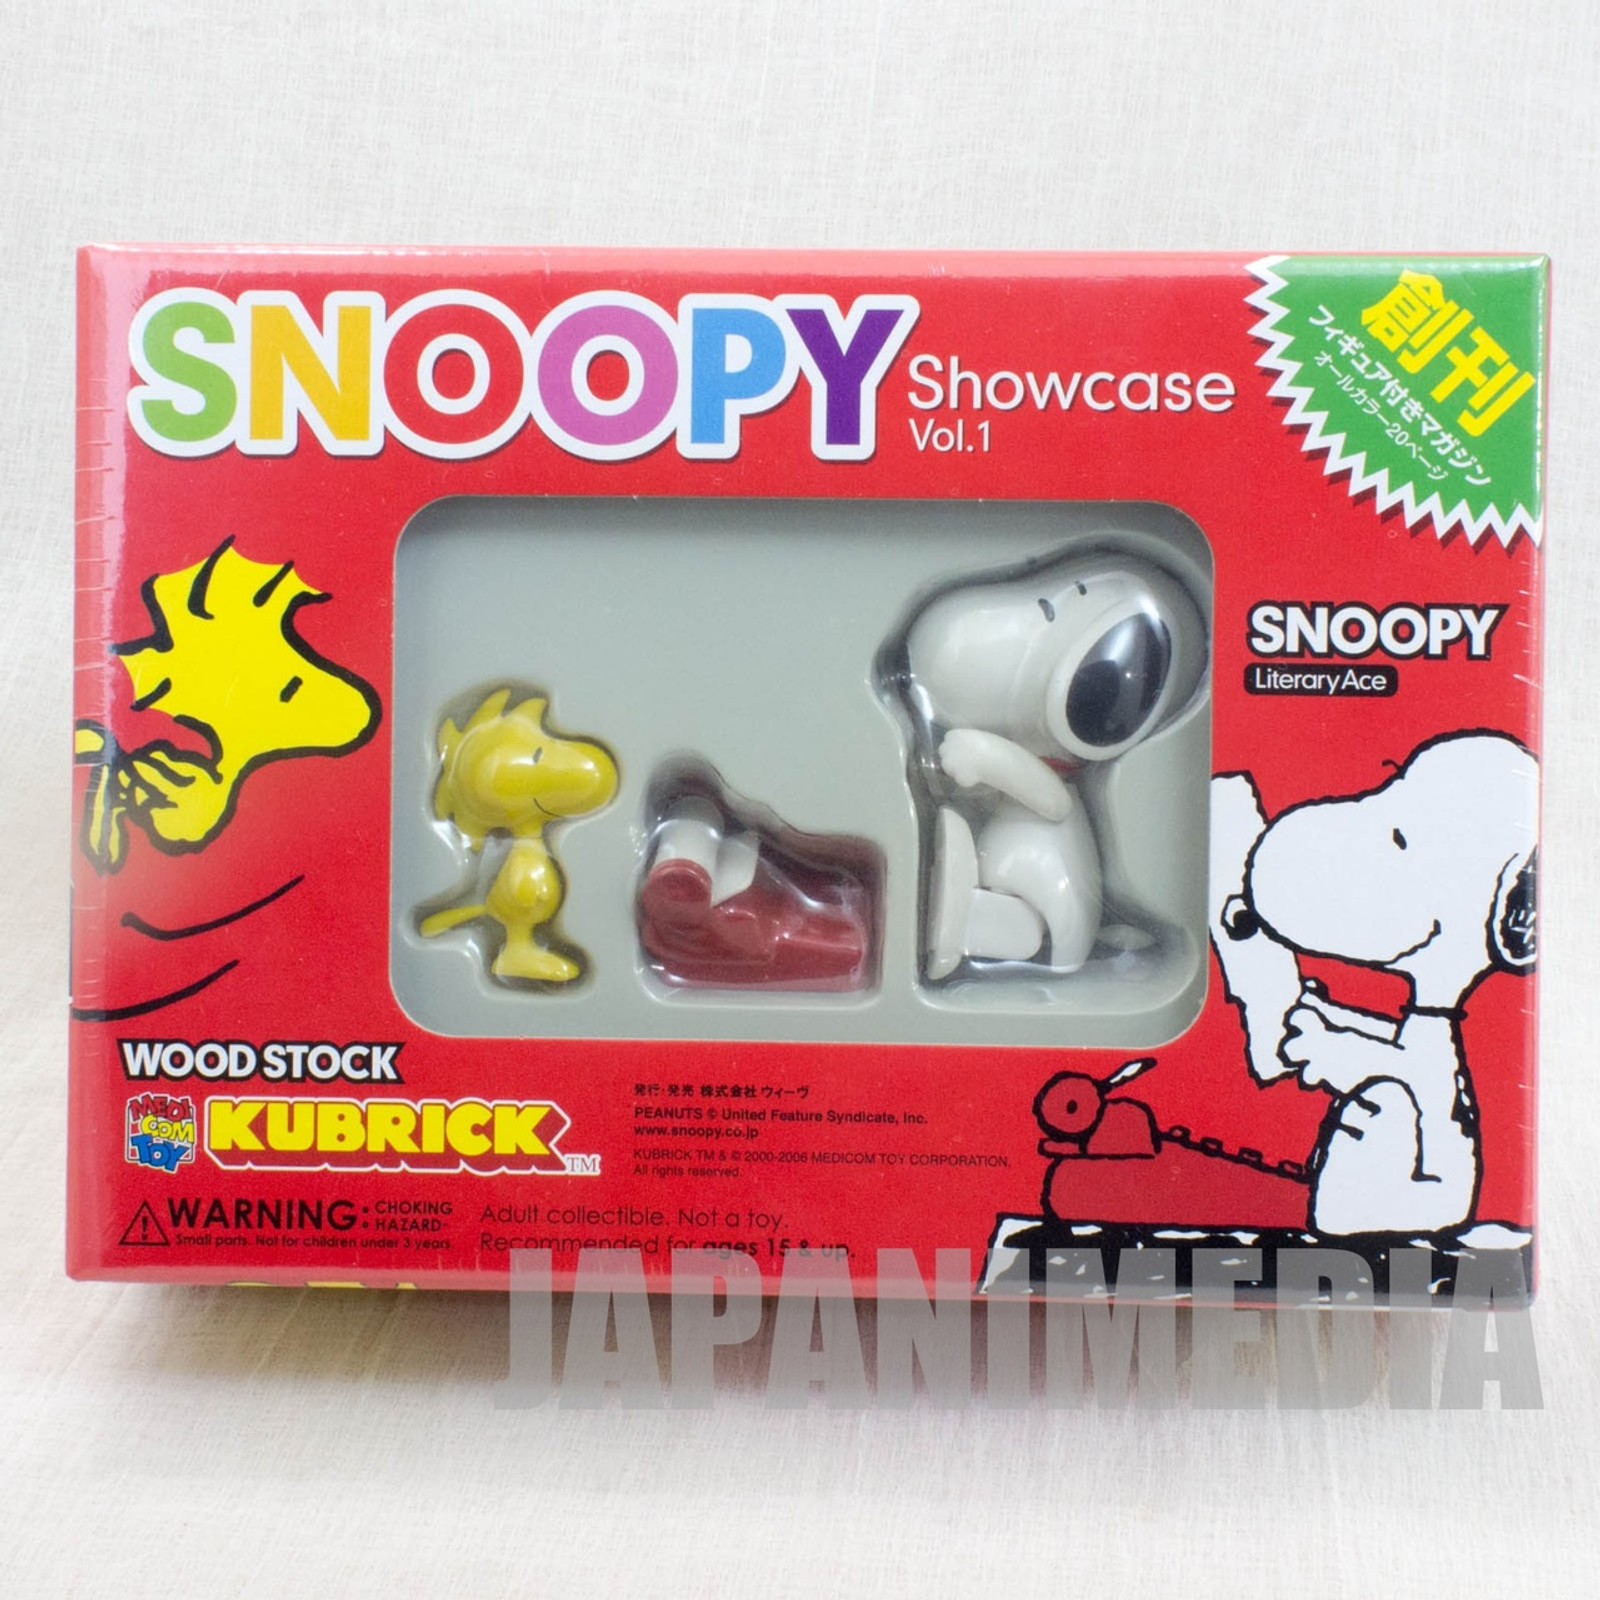 Snoopy Woodstock Kubrick Showcase Vol.01 Medicom Toy Figure JAPAN ANIME